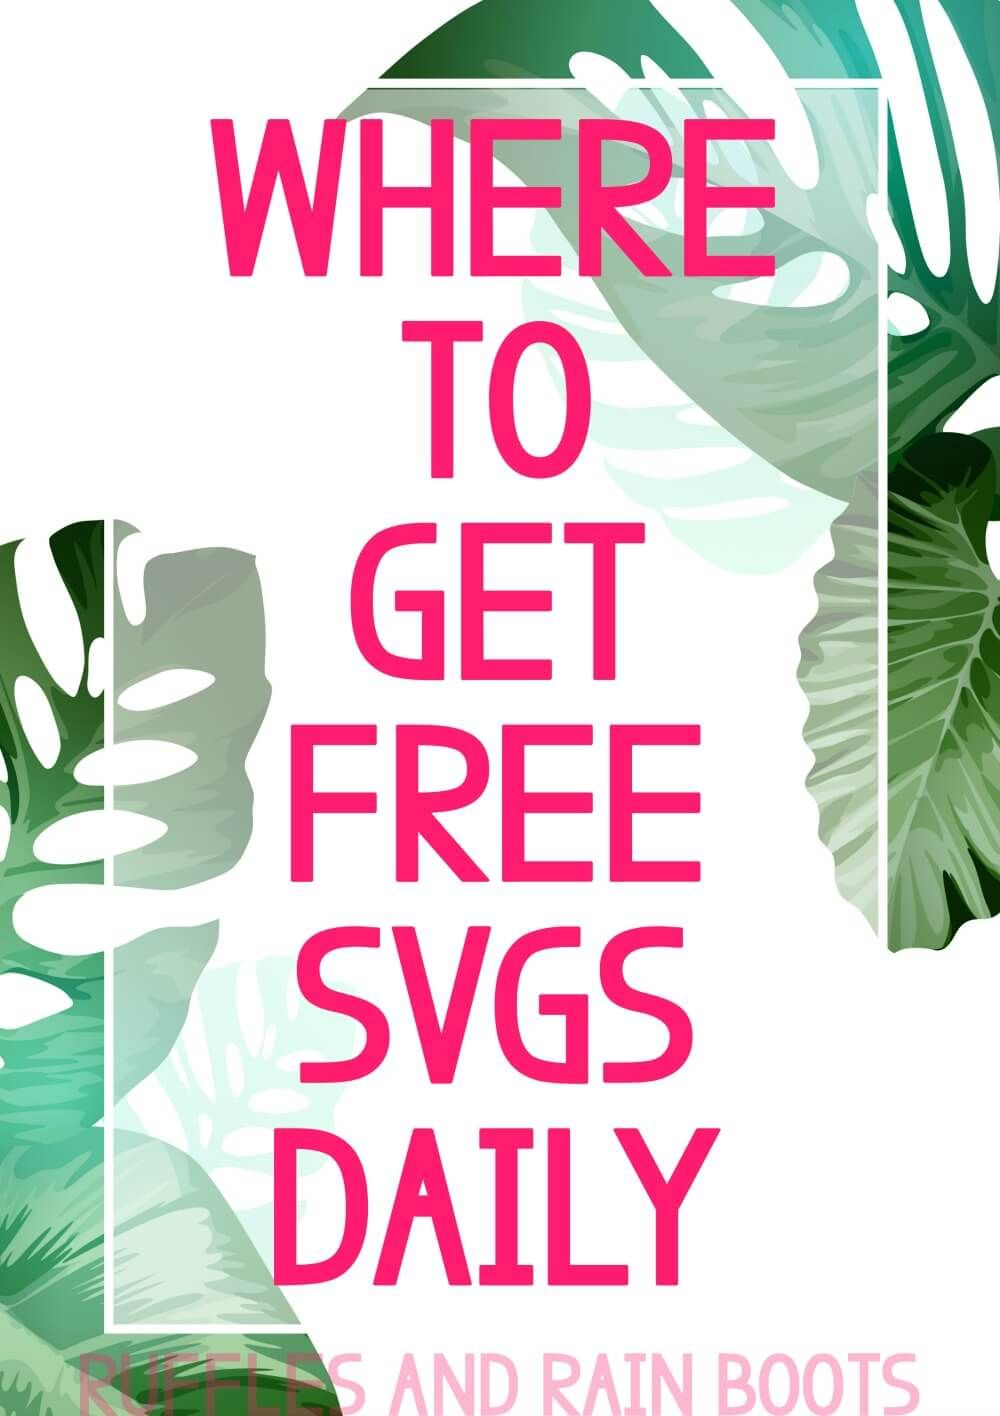 Download Where to Get Free SVGs Every Day! | Cricut svg files free ...